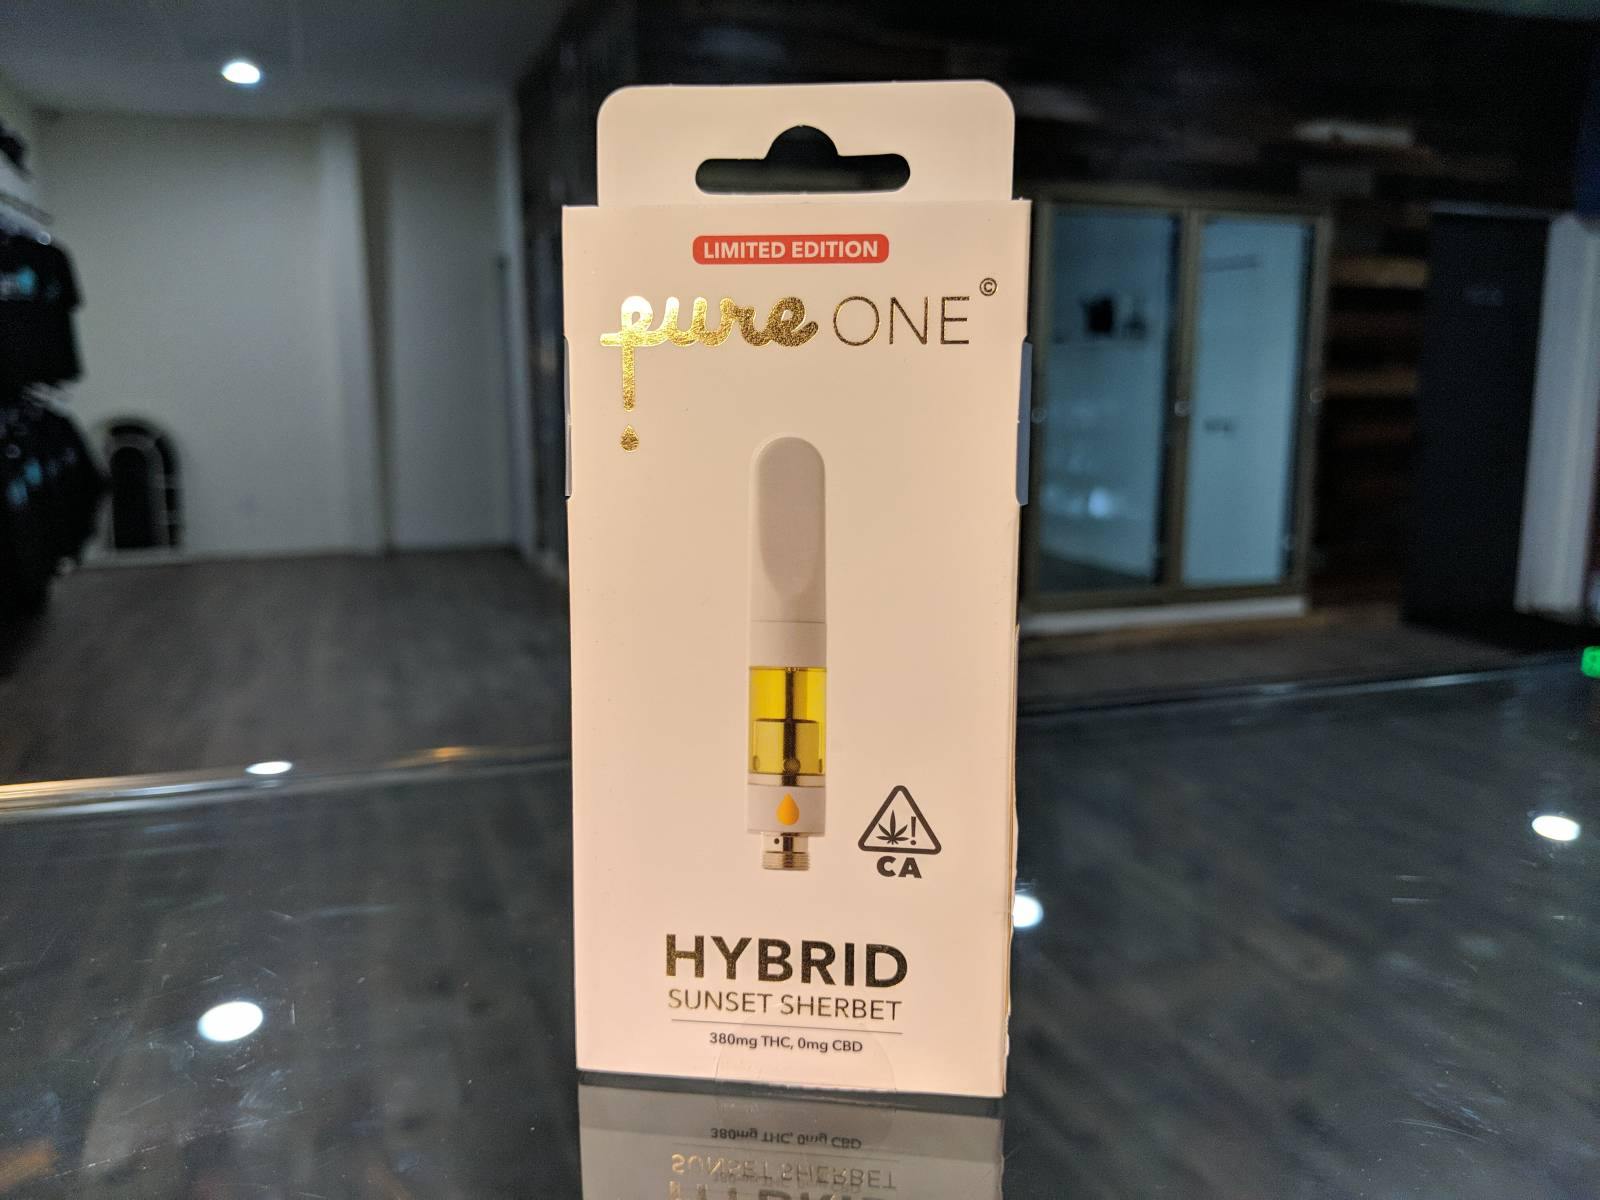 Pure one half gram sunset sherbet hybrid cartridge